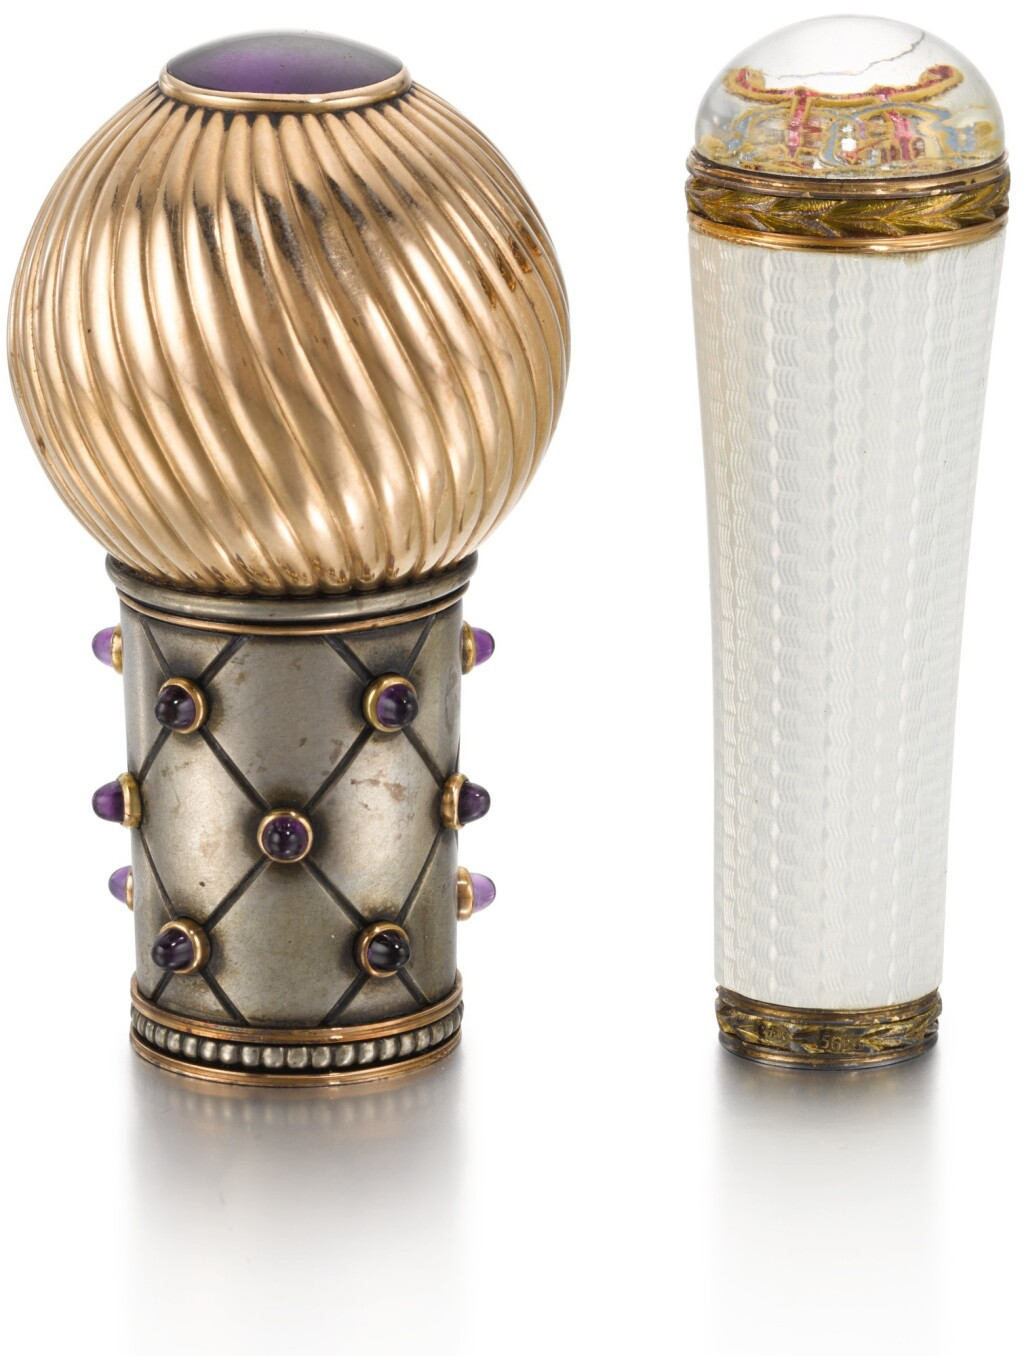 TWO PARASOL HANDLES, IN THE STYLE OF FABERGÉ, 20TH CENTURY